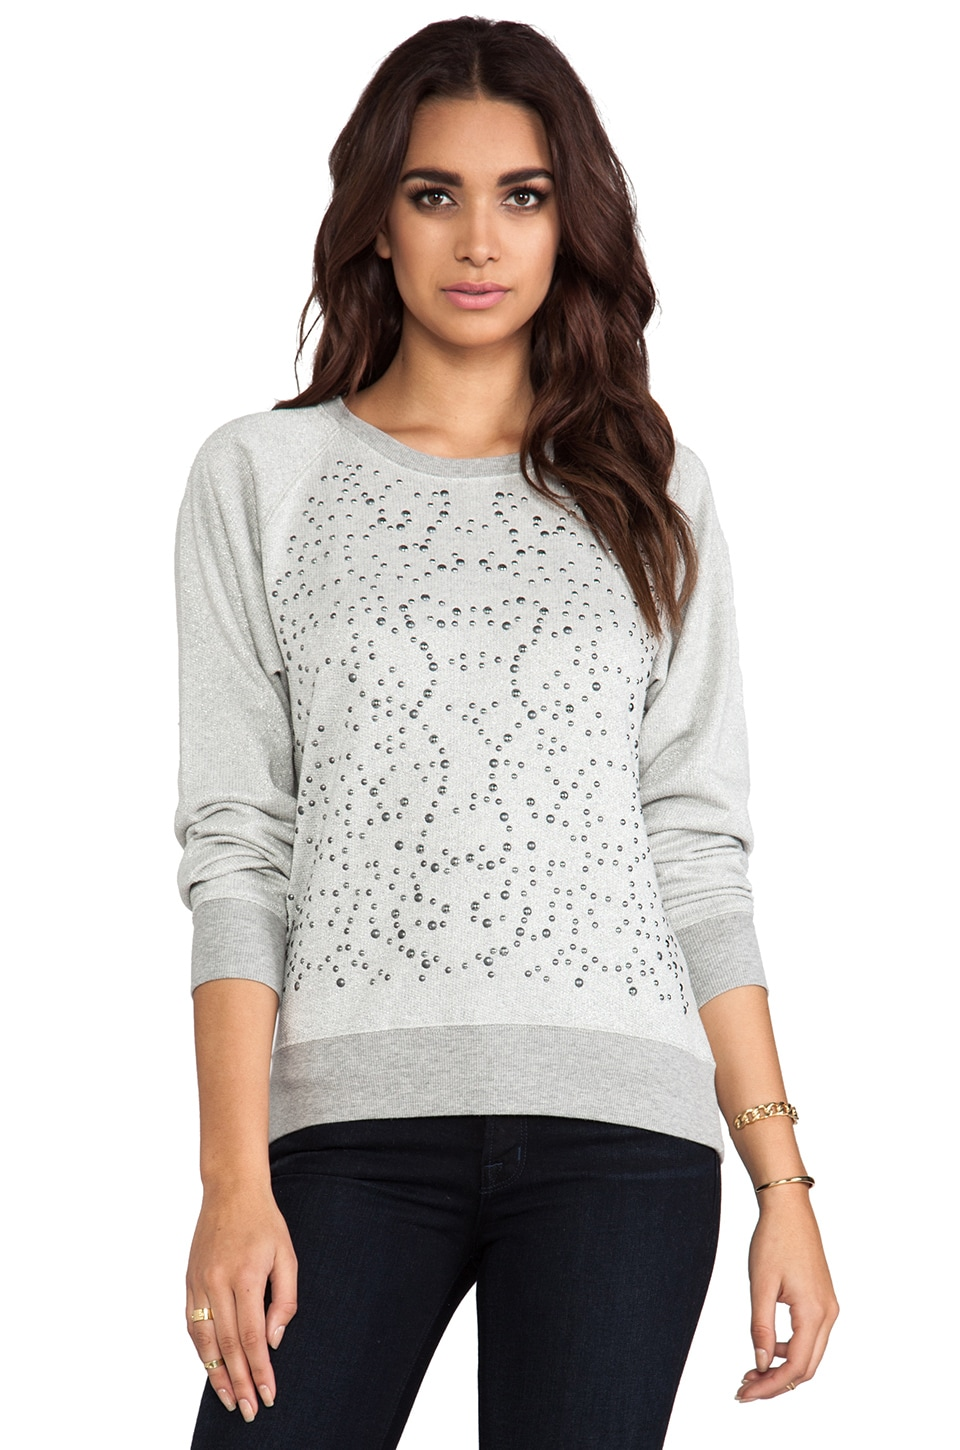 C&C California Lurex French Terry Long Sleeve Embellished Sweatshirt en Gris Chiné